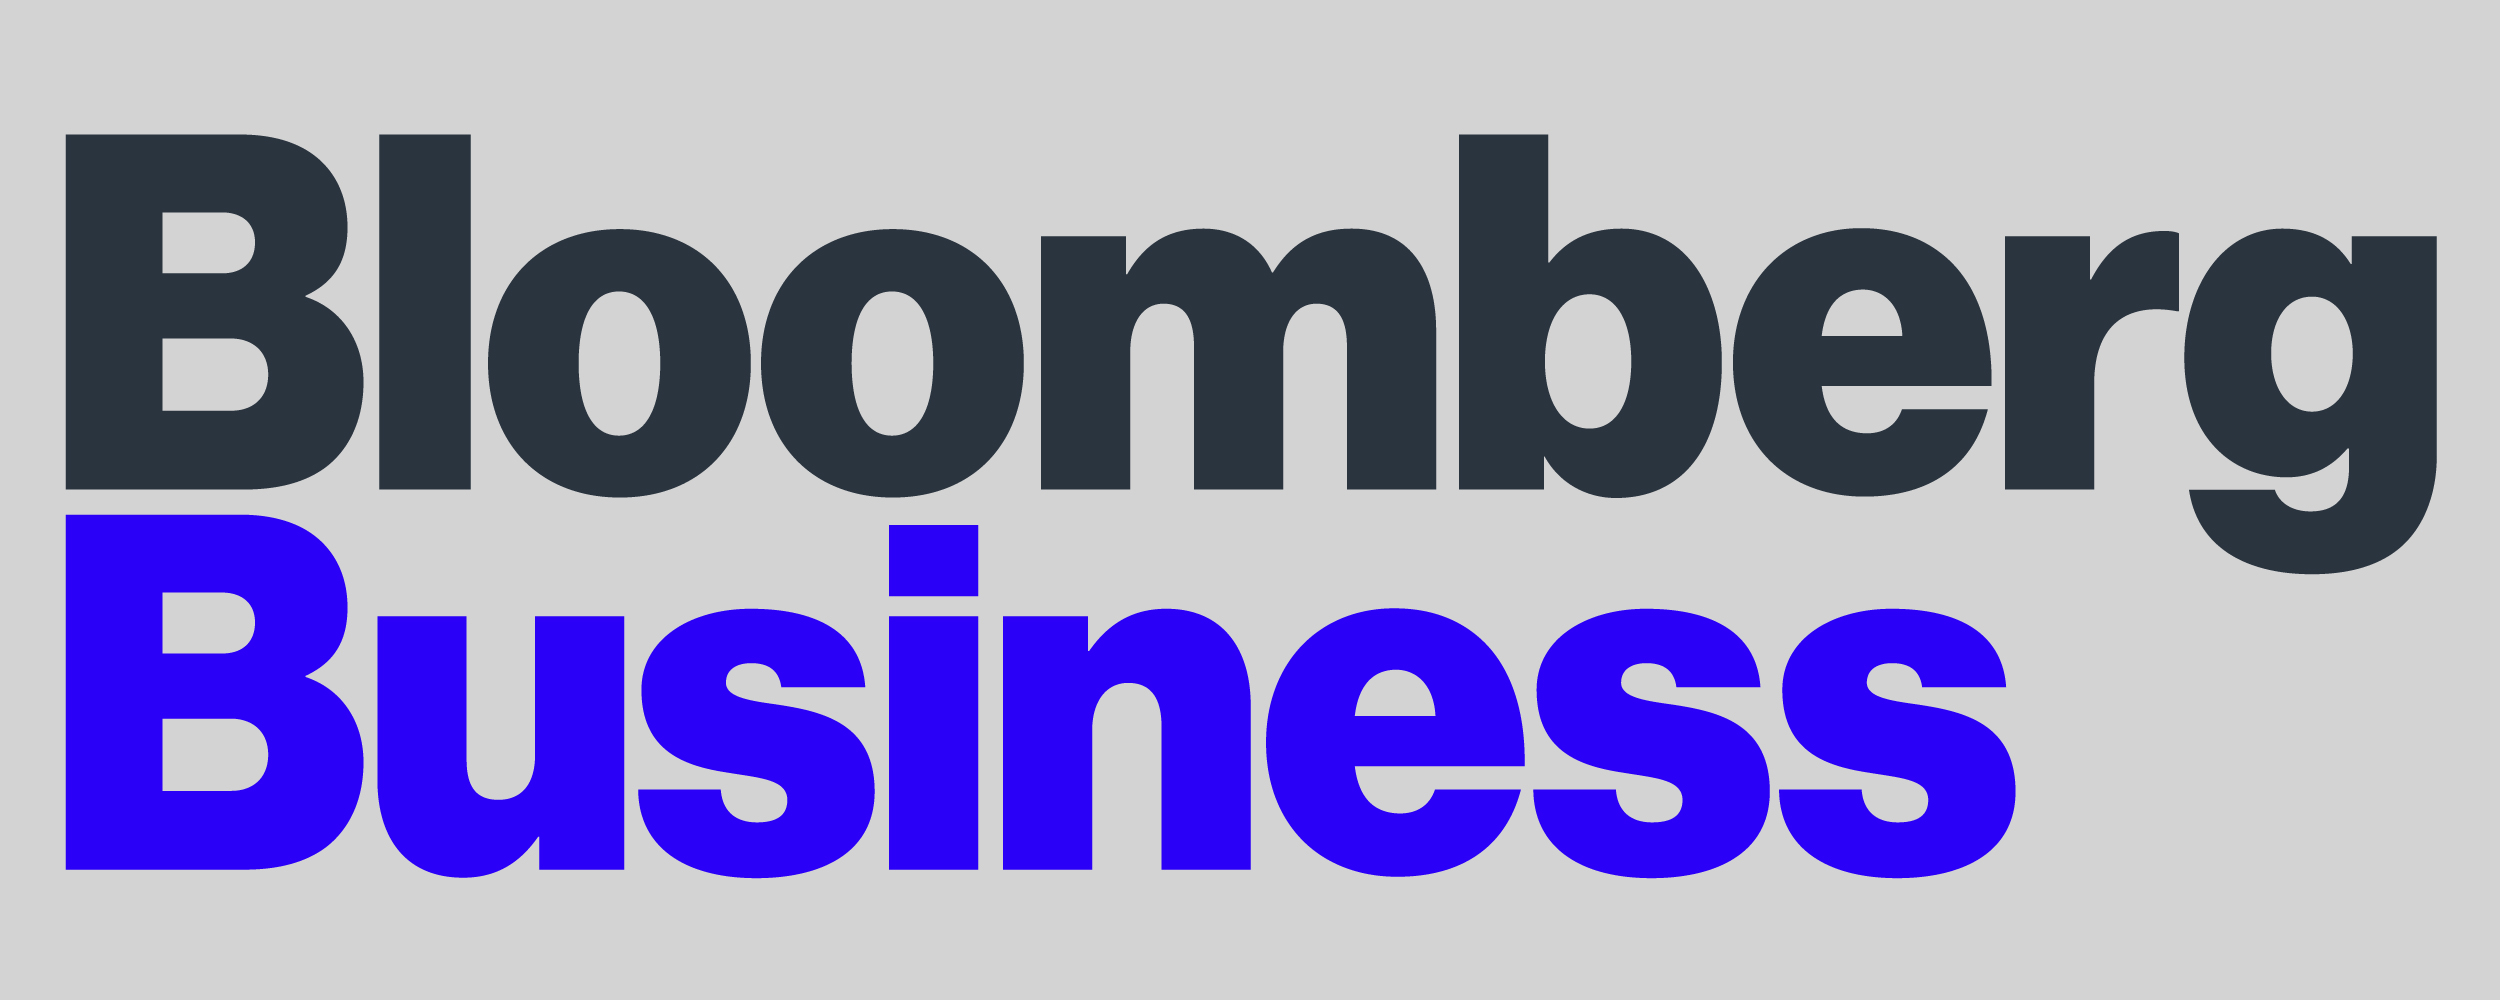 bloomberg logo bloomberg symbol meaning history and